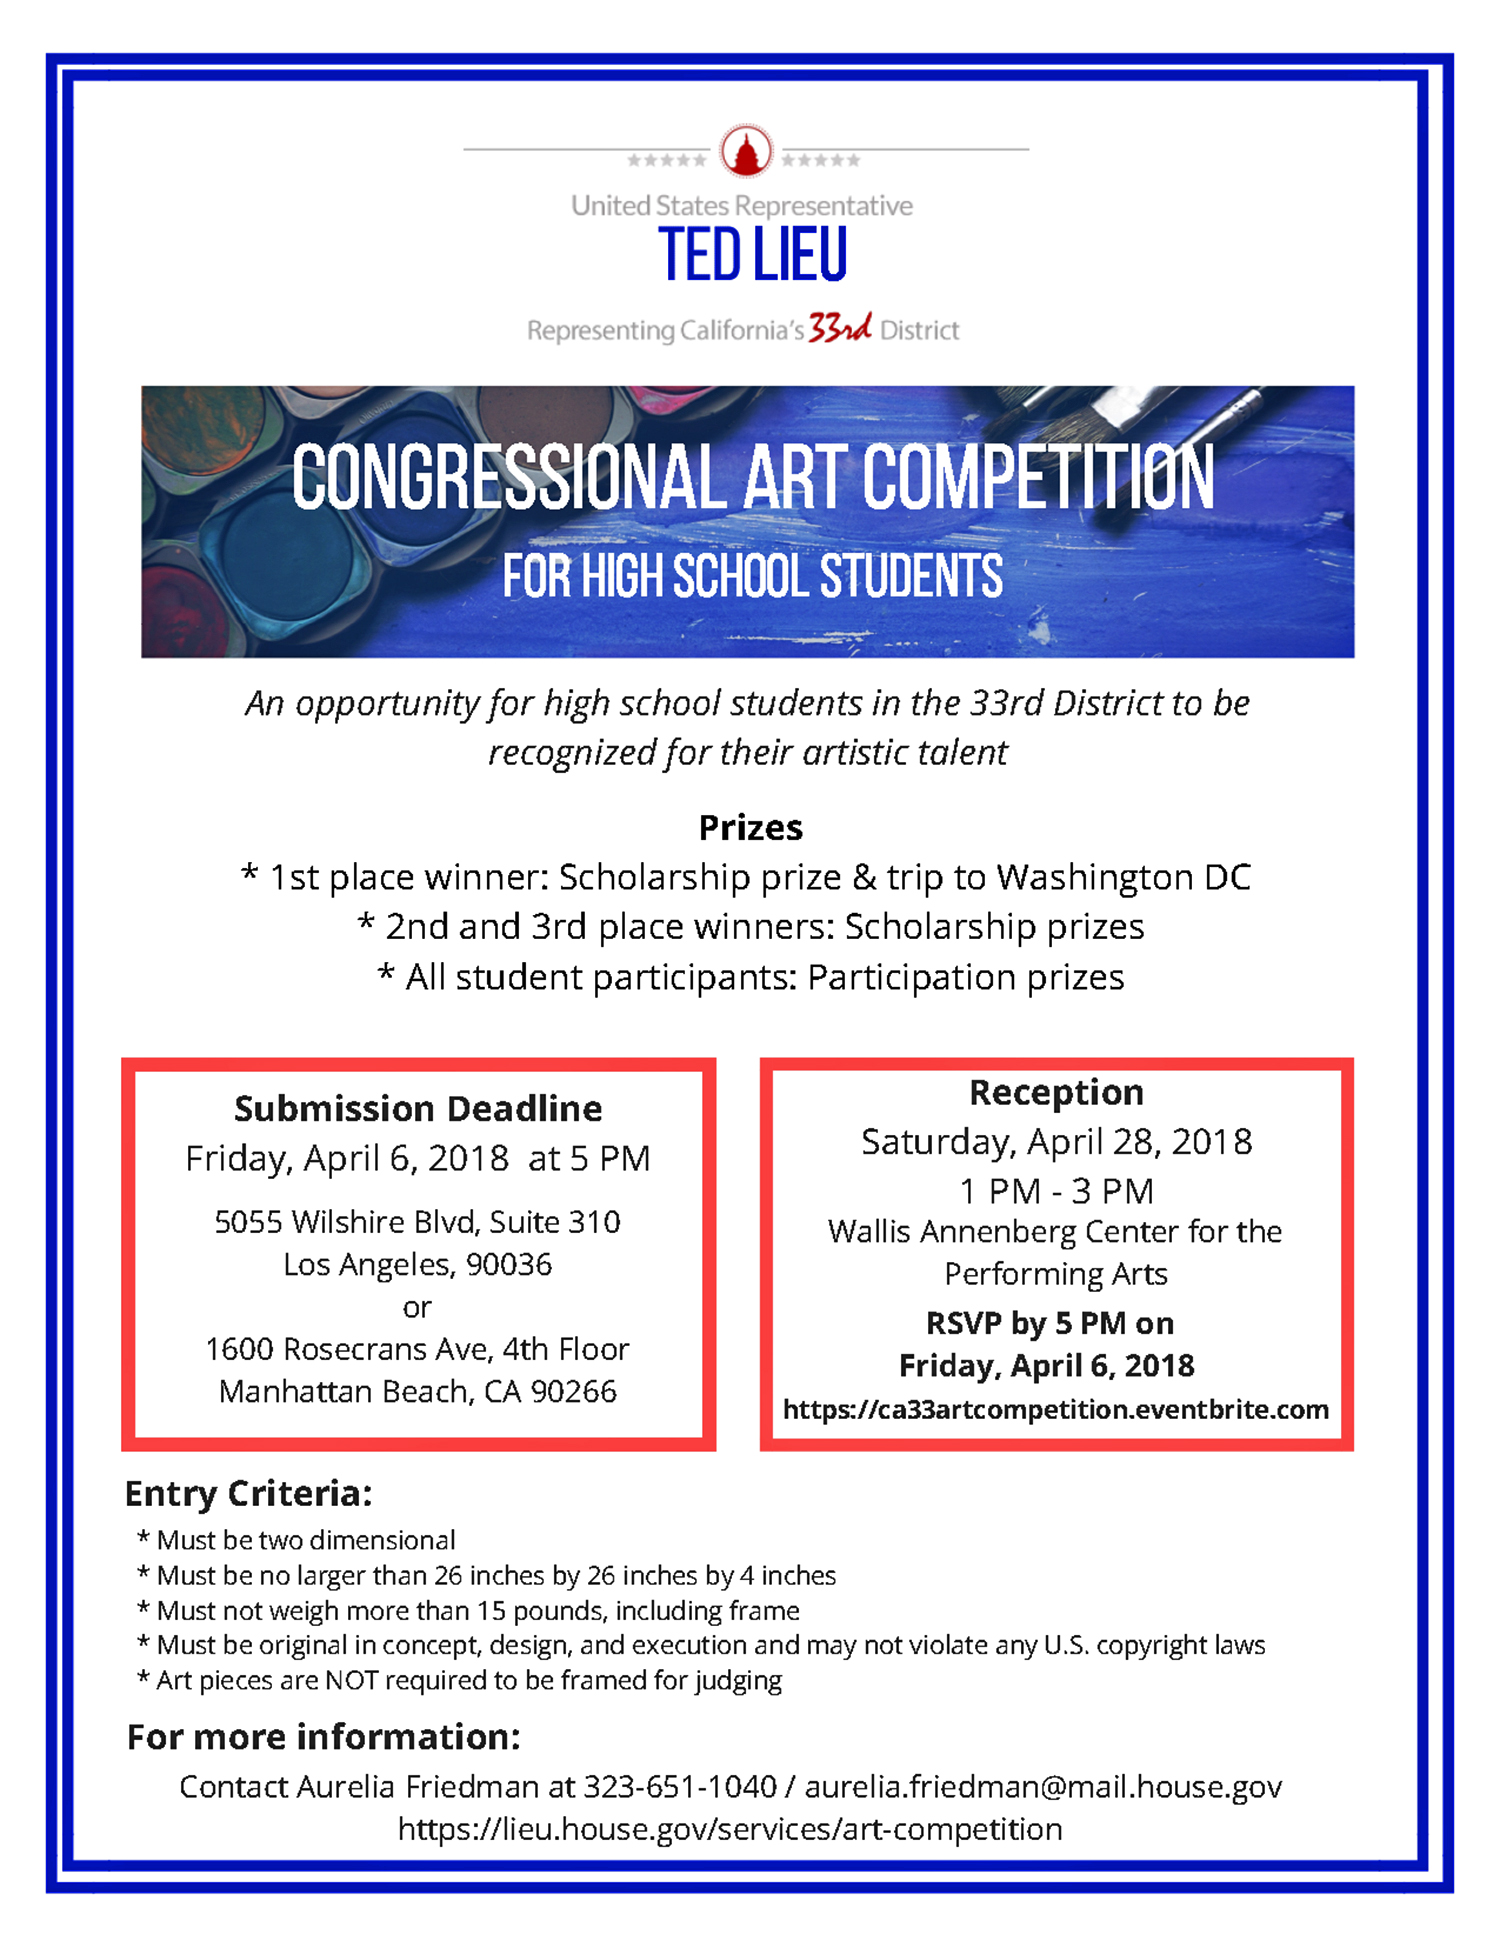 Enter the Congressional Art Competition for the 33rd